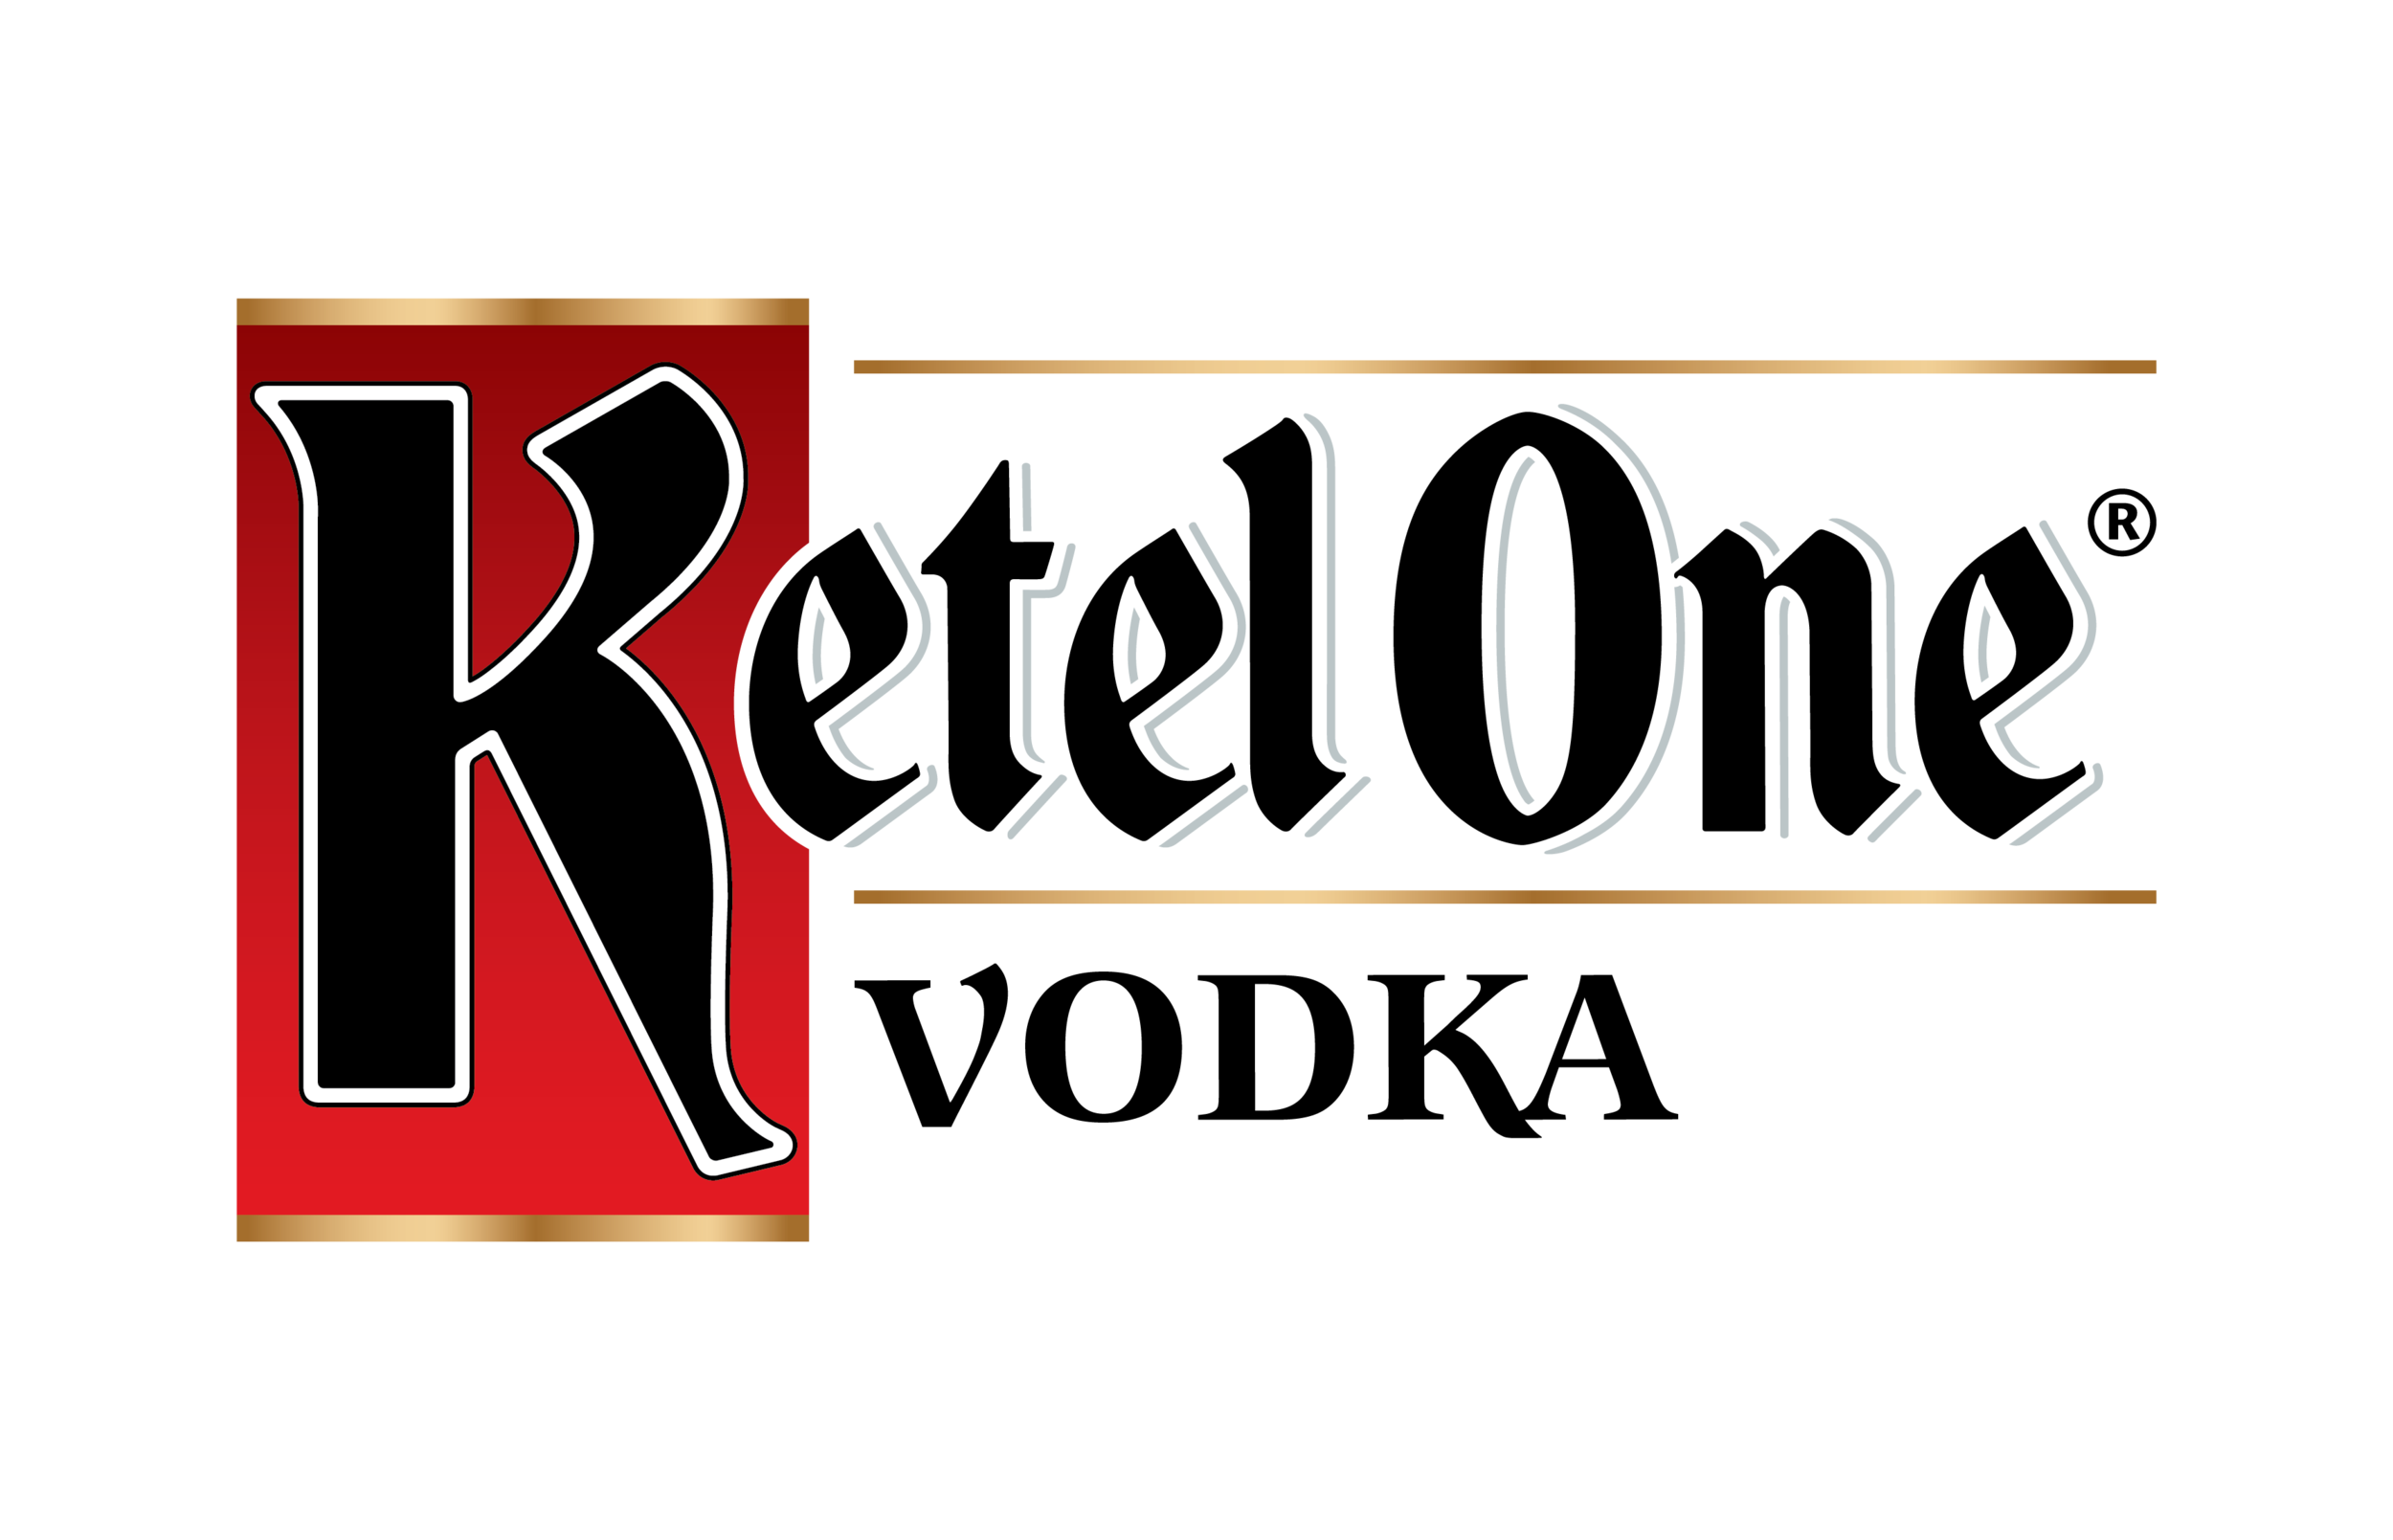 Logo-Ketel-One-Gradient-01.png